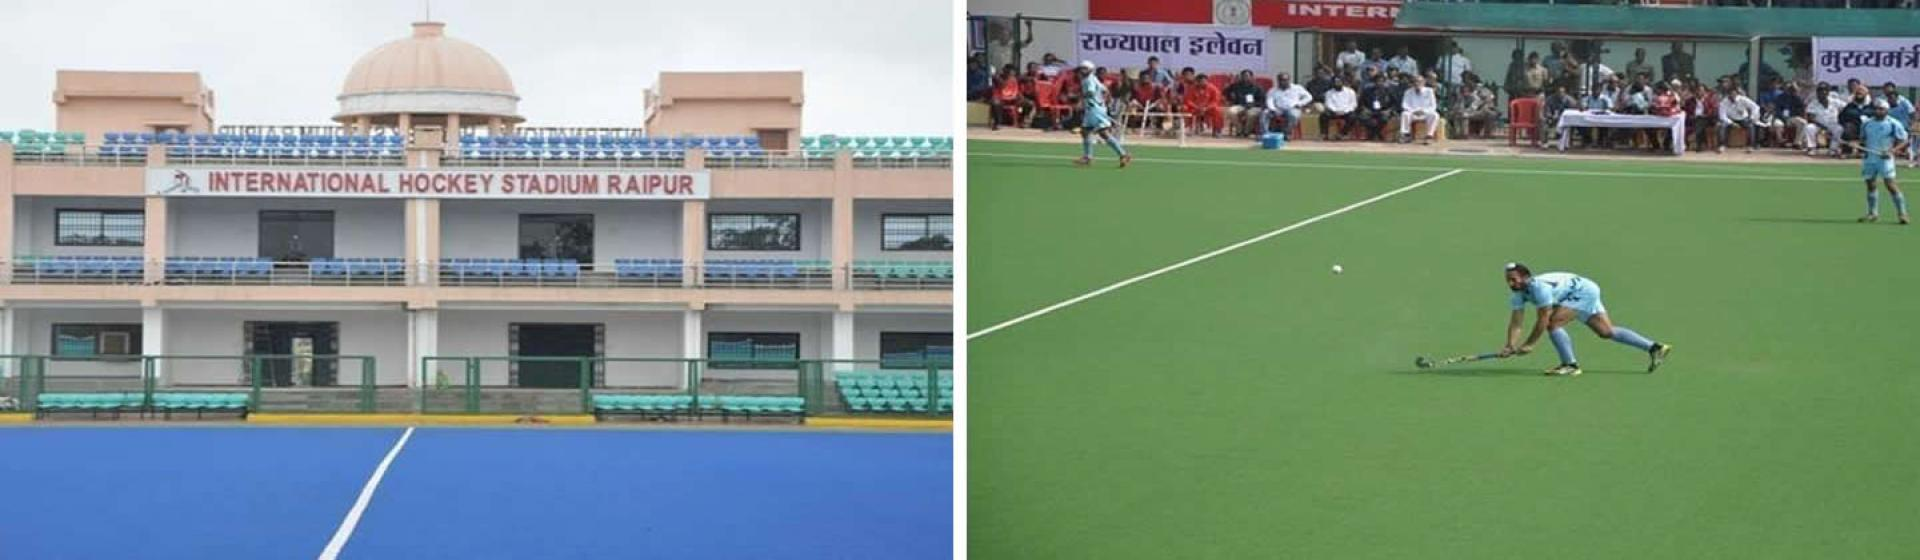 International Hockey Stadium, Raipur